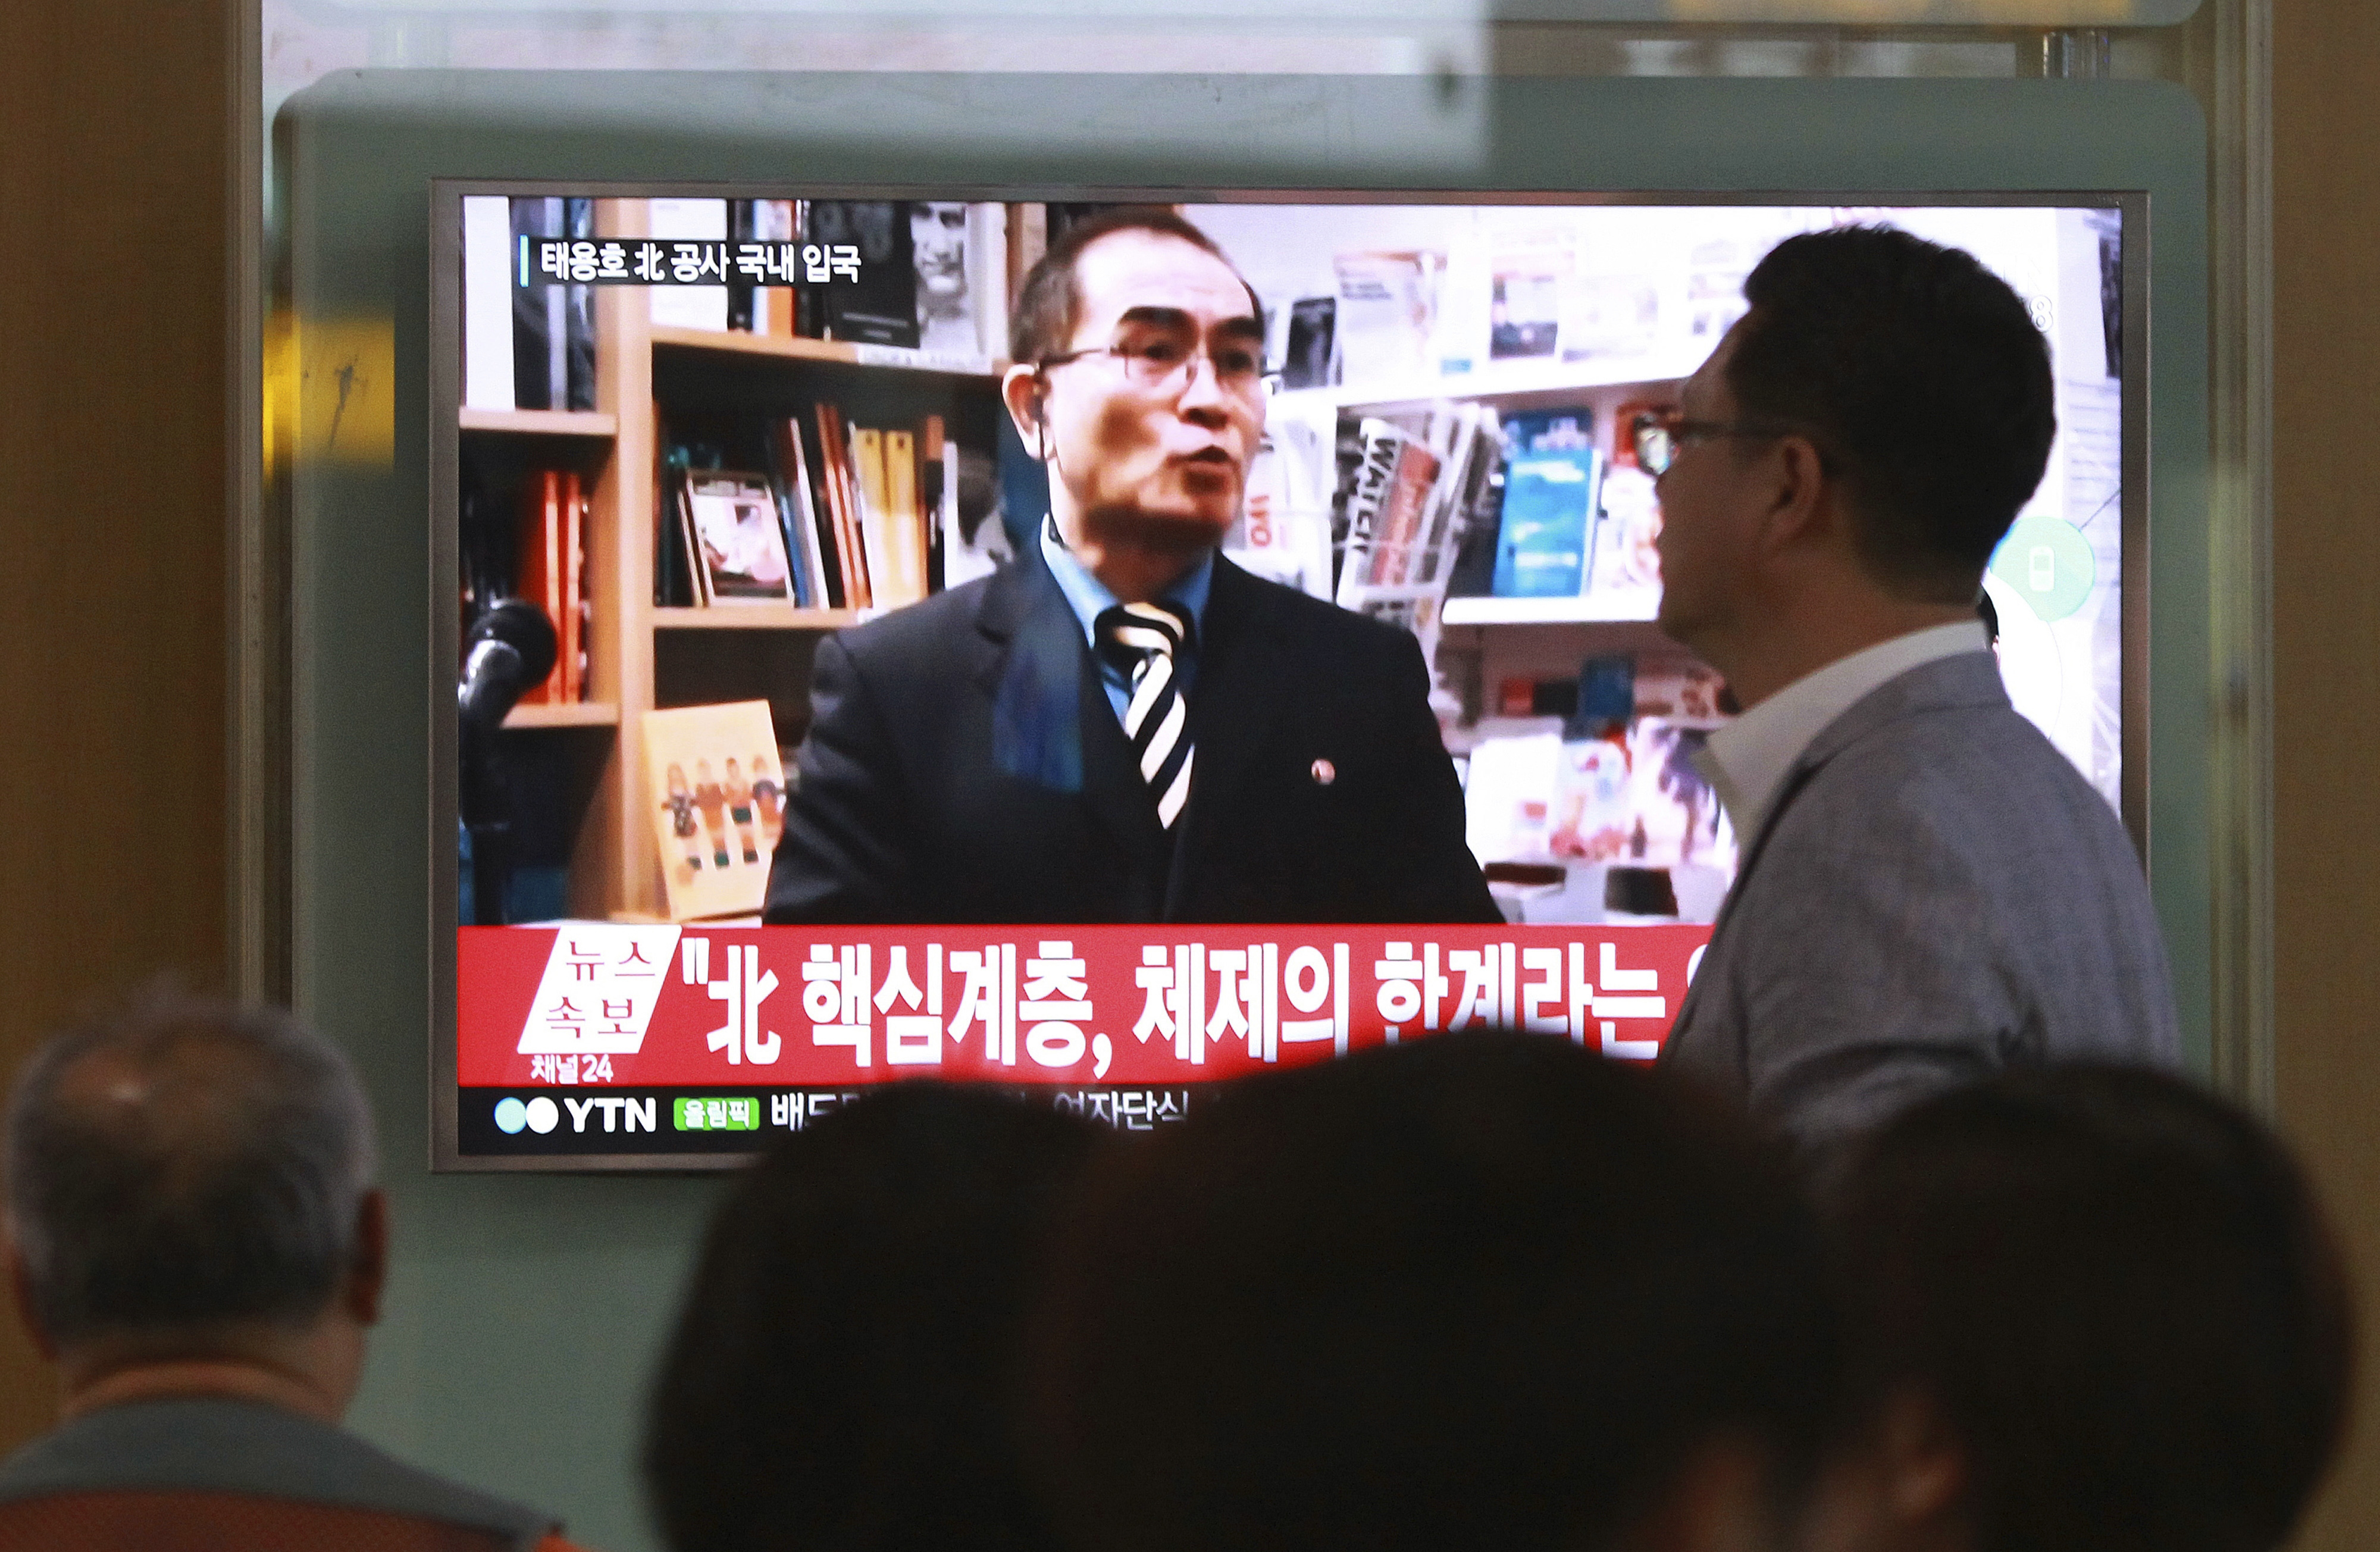 People watch a TV news program showing a file image of Thae Yong Ho, a high-profile North Korean defector, at Seoul Railway Station in Seoul, South Korea, Aug. 17, 2016